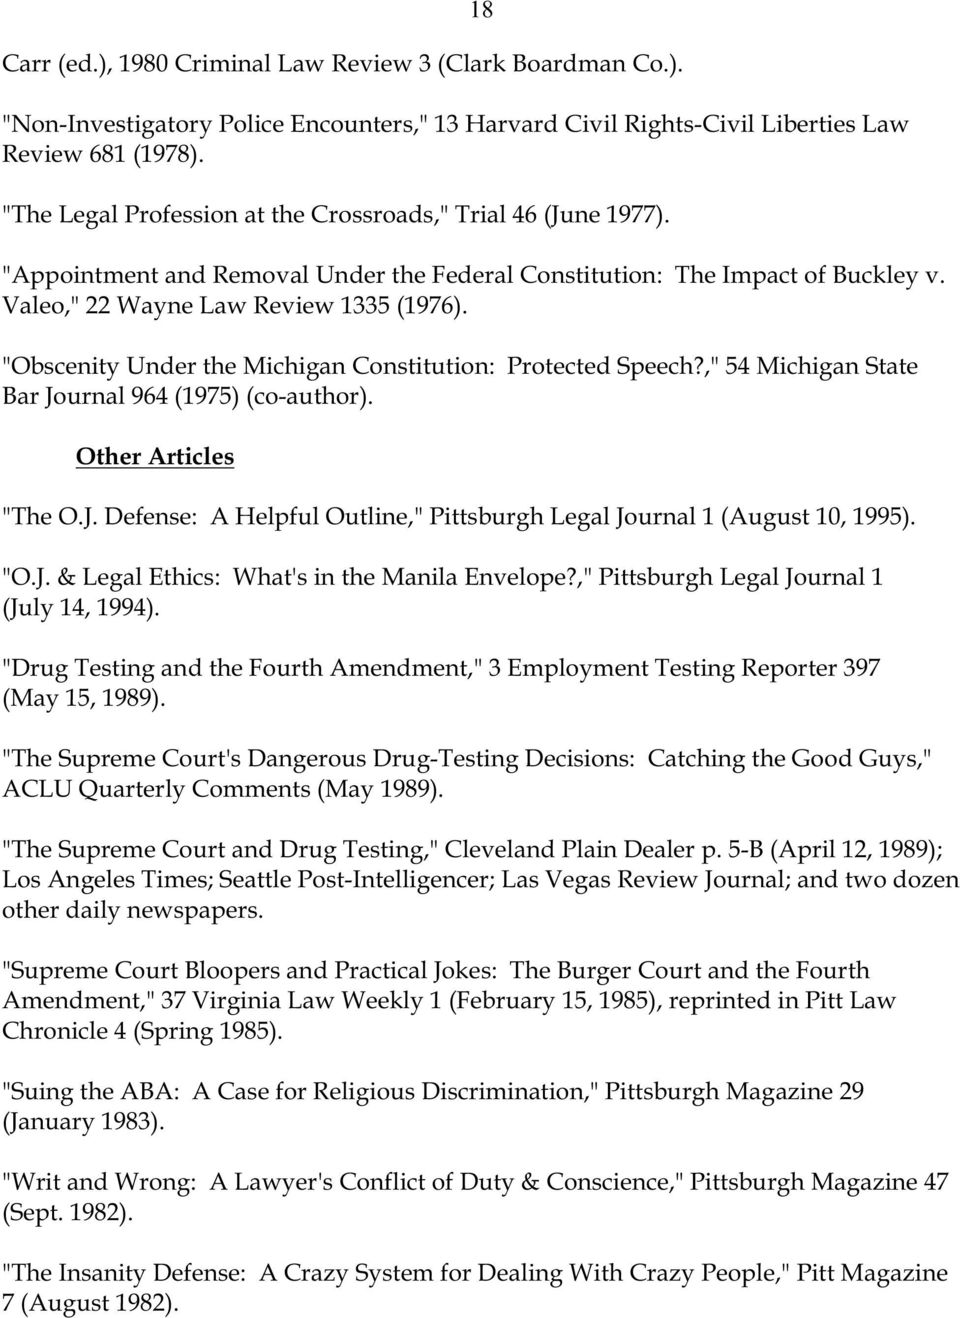 """Obscenity Under the Michigan Constitution: Protected Speech?,"" 54 Michigan State Bar Journal 964 (1975) (co-author). Other Articles ""The O.J. Defense: A Helpful Outline,"" Pittsburgh Legal Journal 1 (August 10, 1995)."